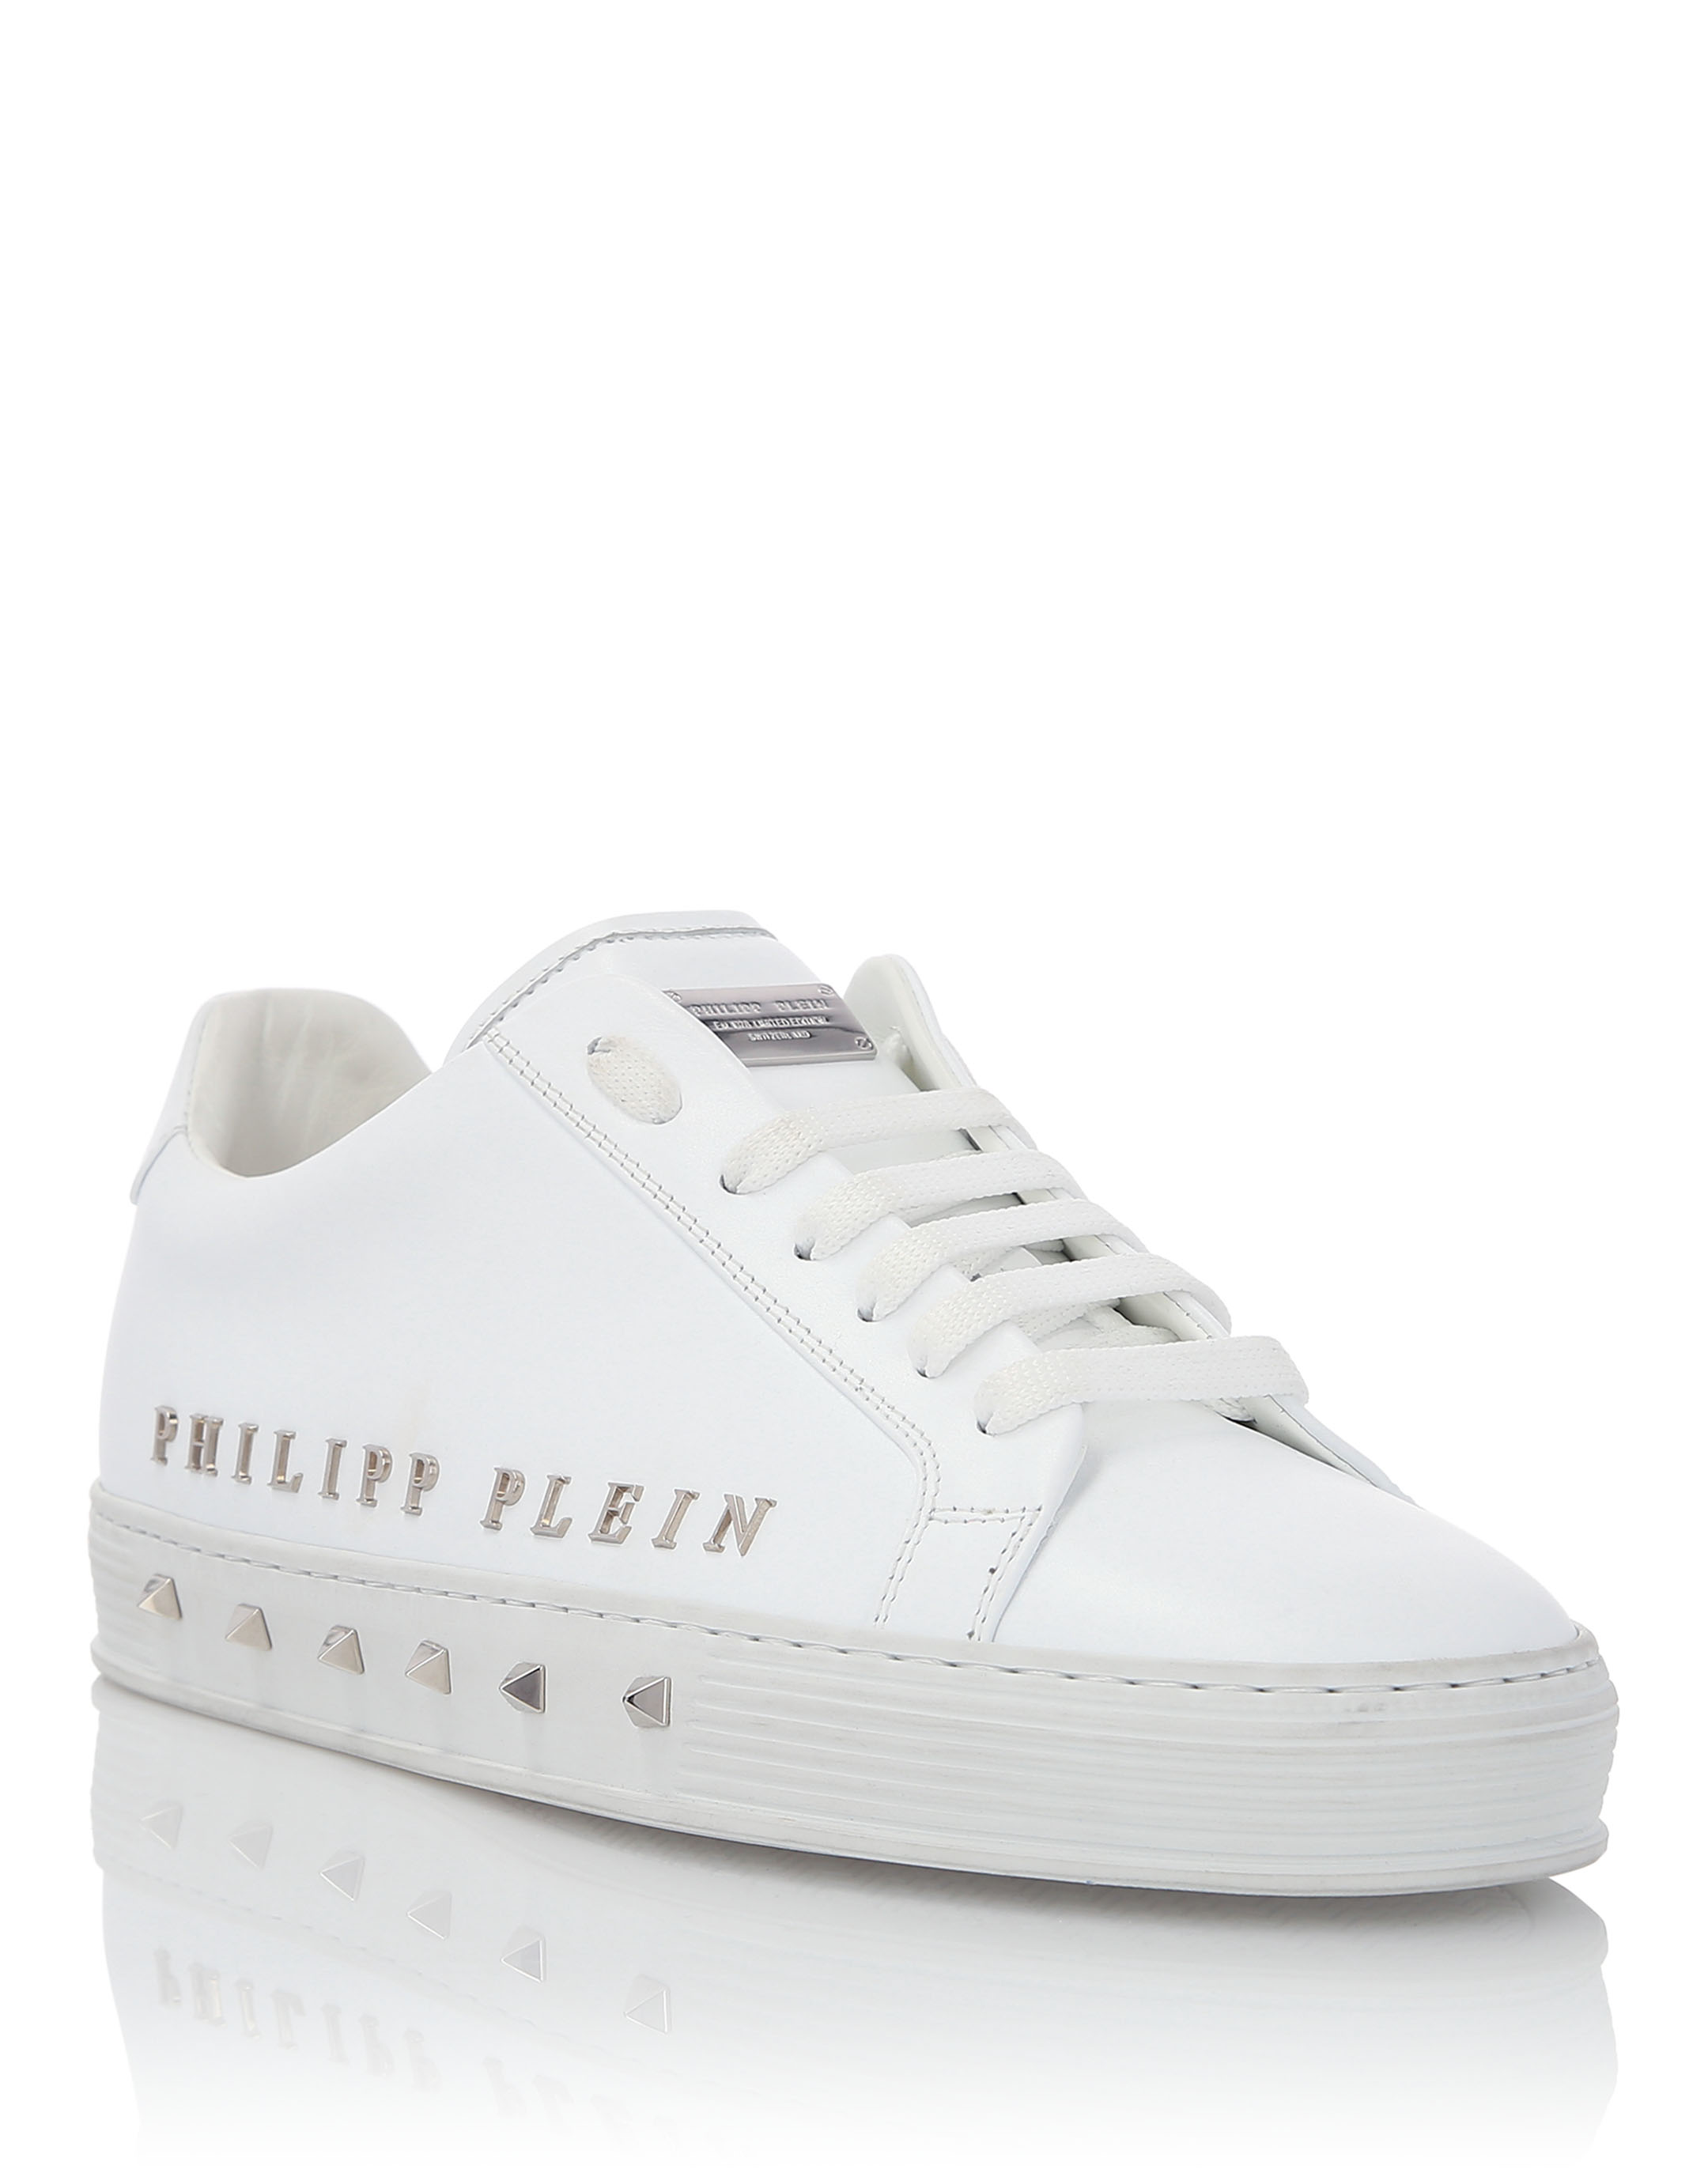 "PHILIPP PLEIN Lo-Top Sneakers ""The First Time In My Life"", White-Nickel"